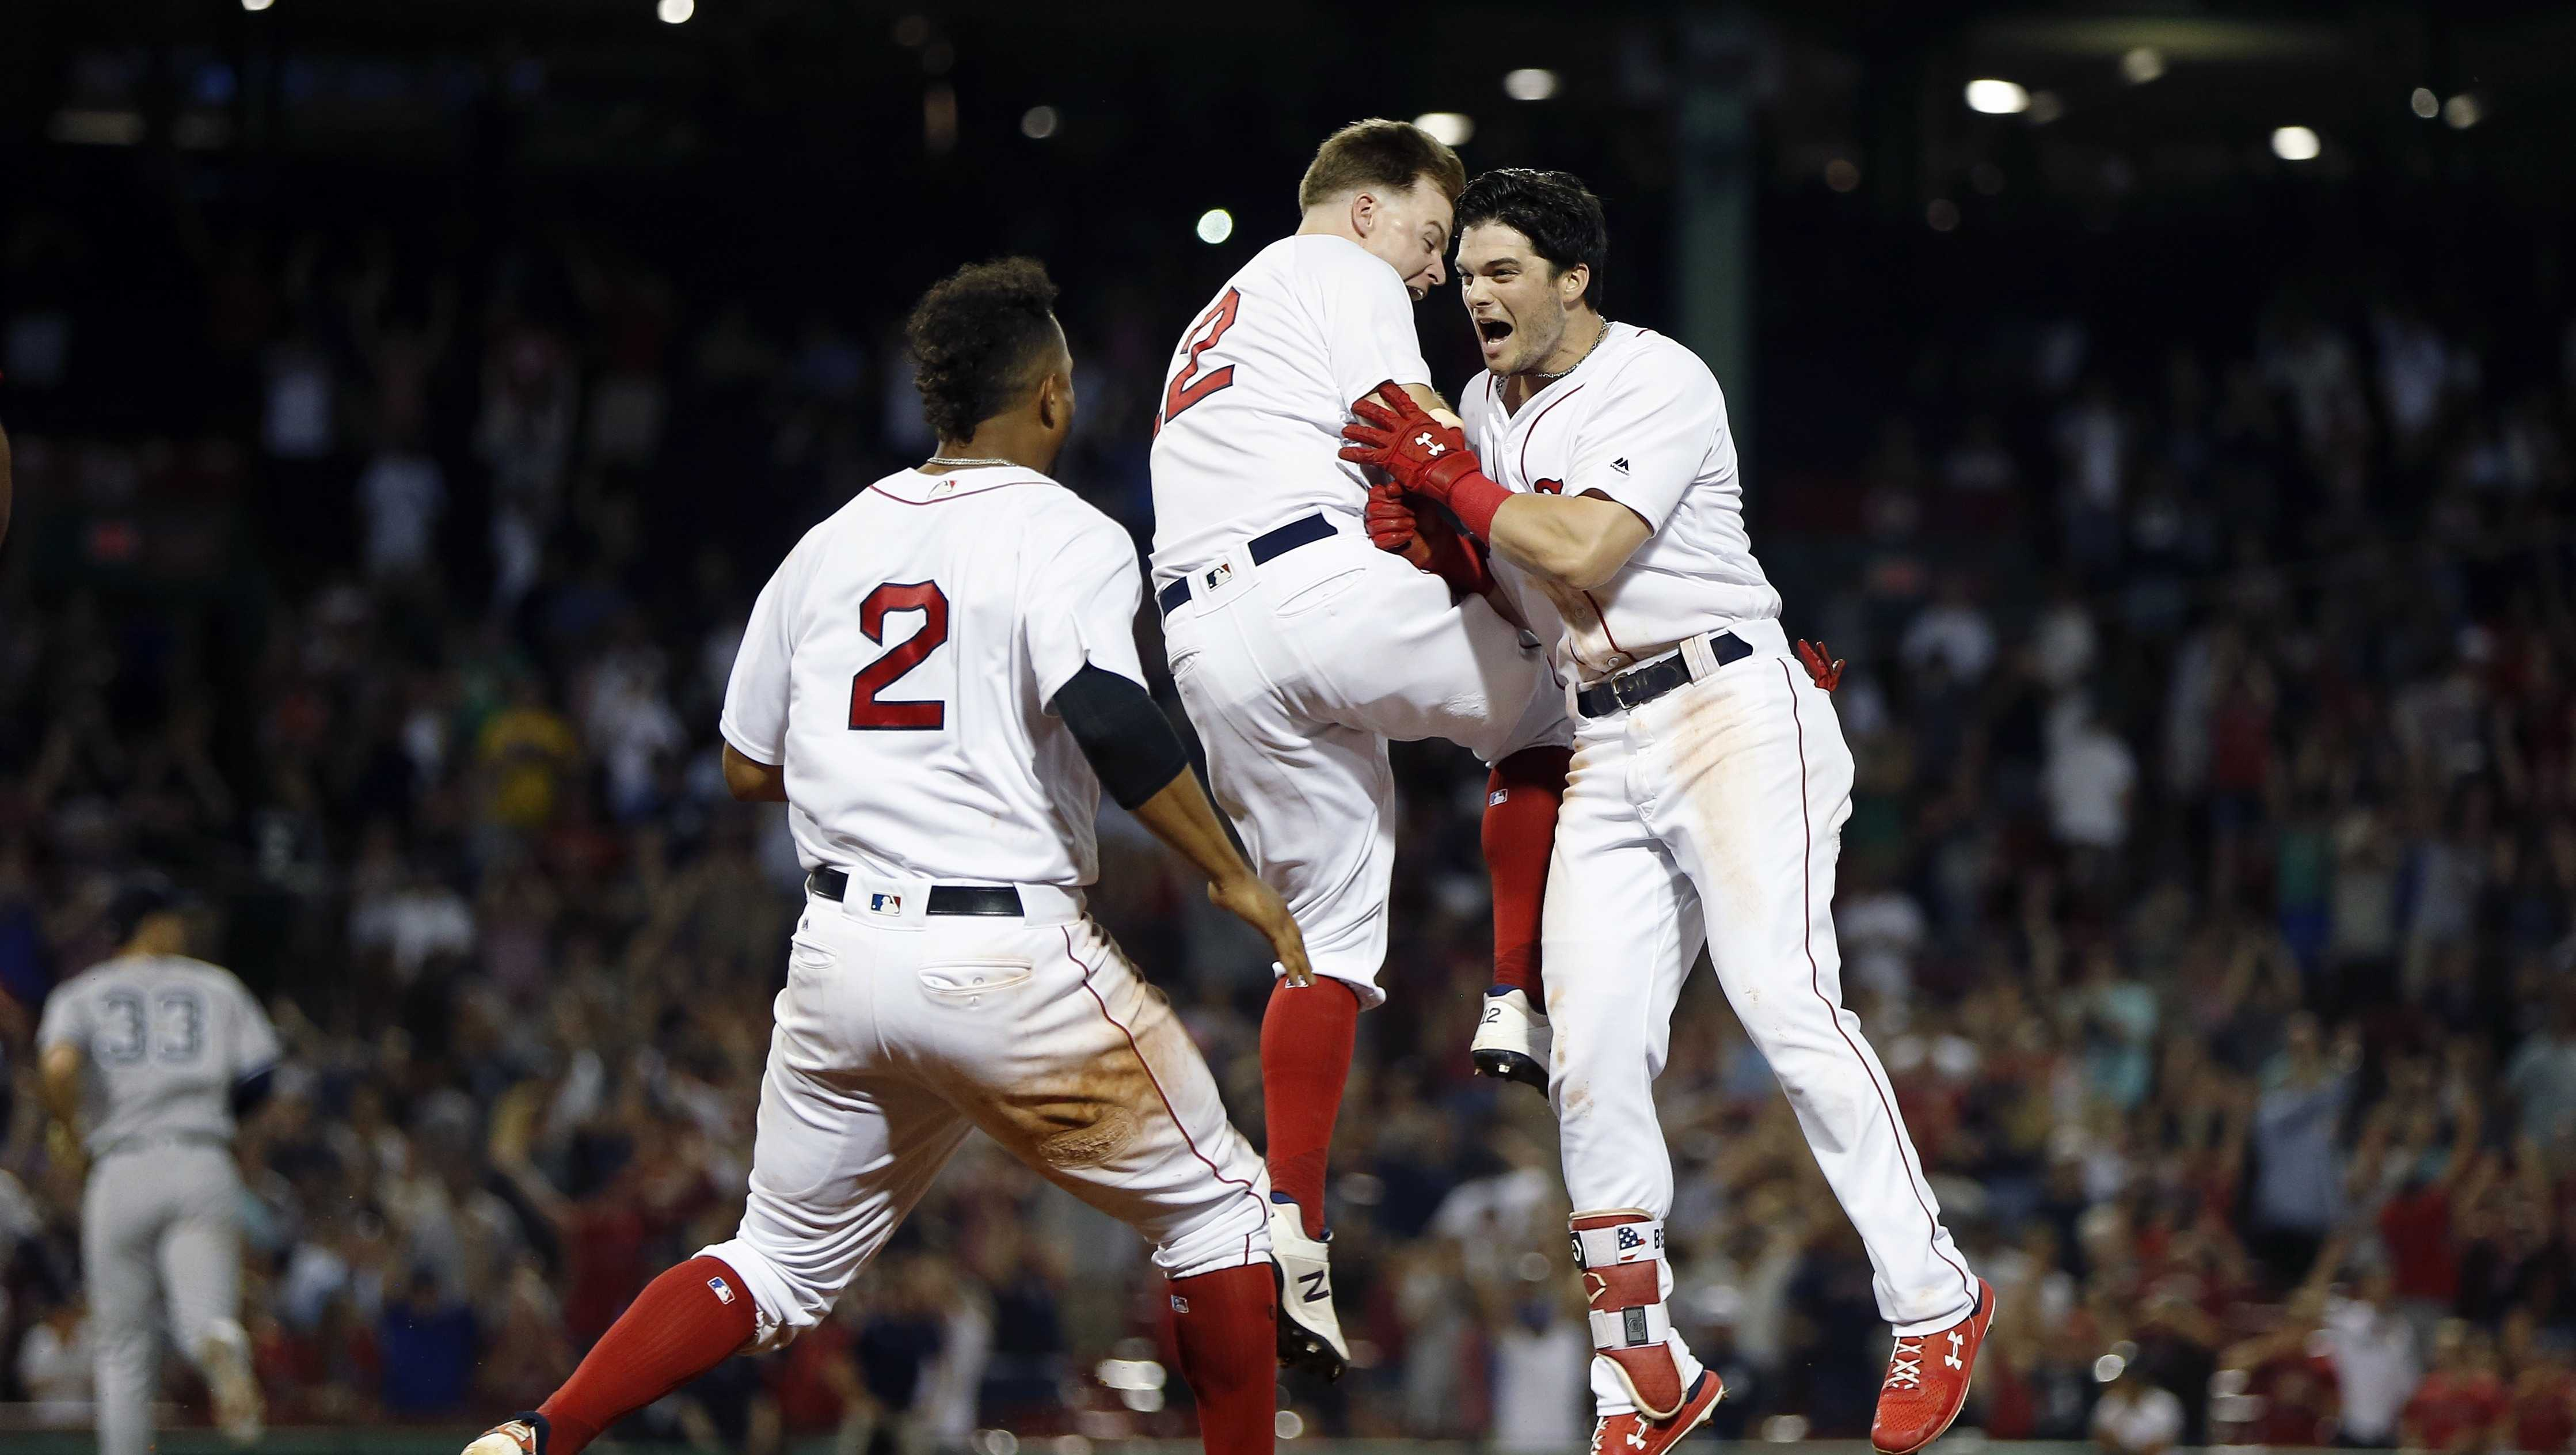 Boston Red Sox's Andrew Benintendi, right, celebrates his game-winning RBI single with Brock Holt, center, and Xander Bogaerts (2) during the tenth inning of a baseball game against the New York Yankees in Boston, Monday, Aug. 6, 2018.